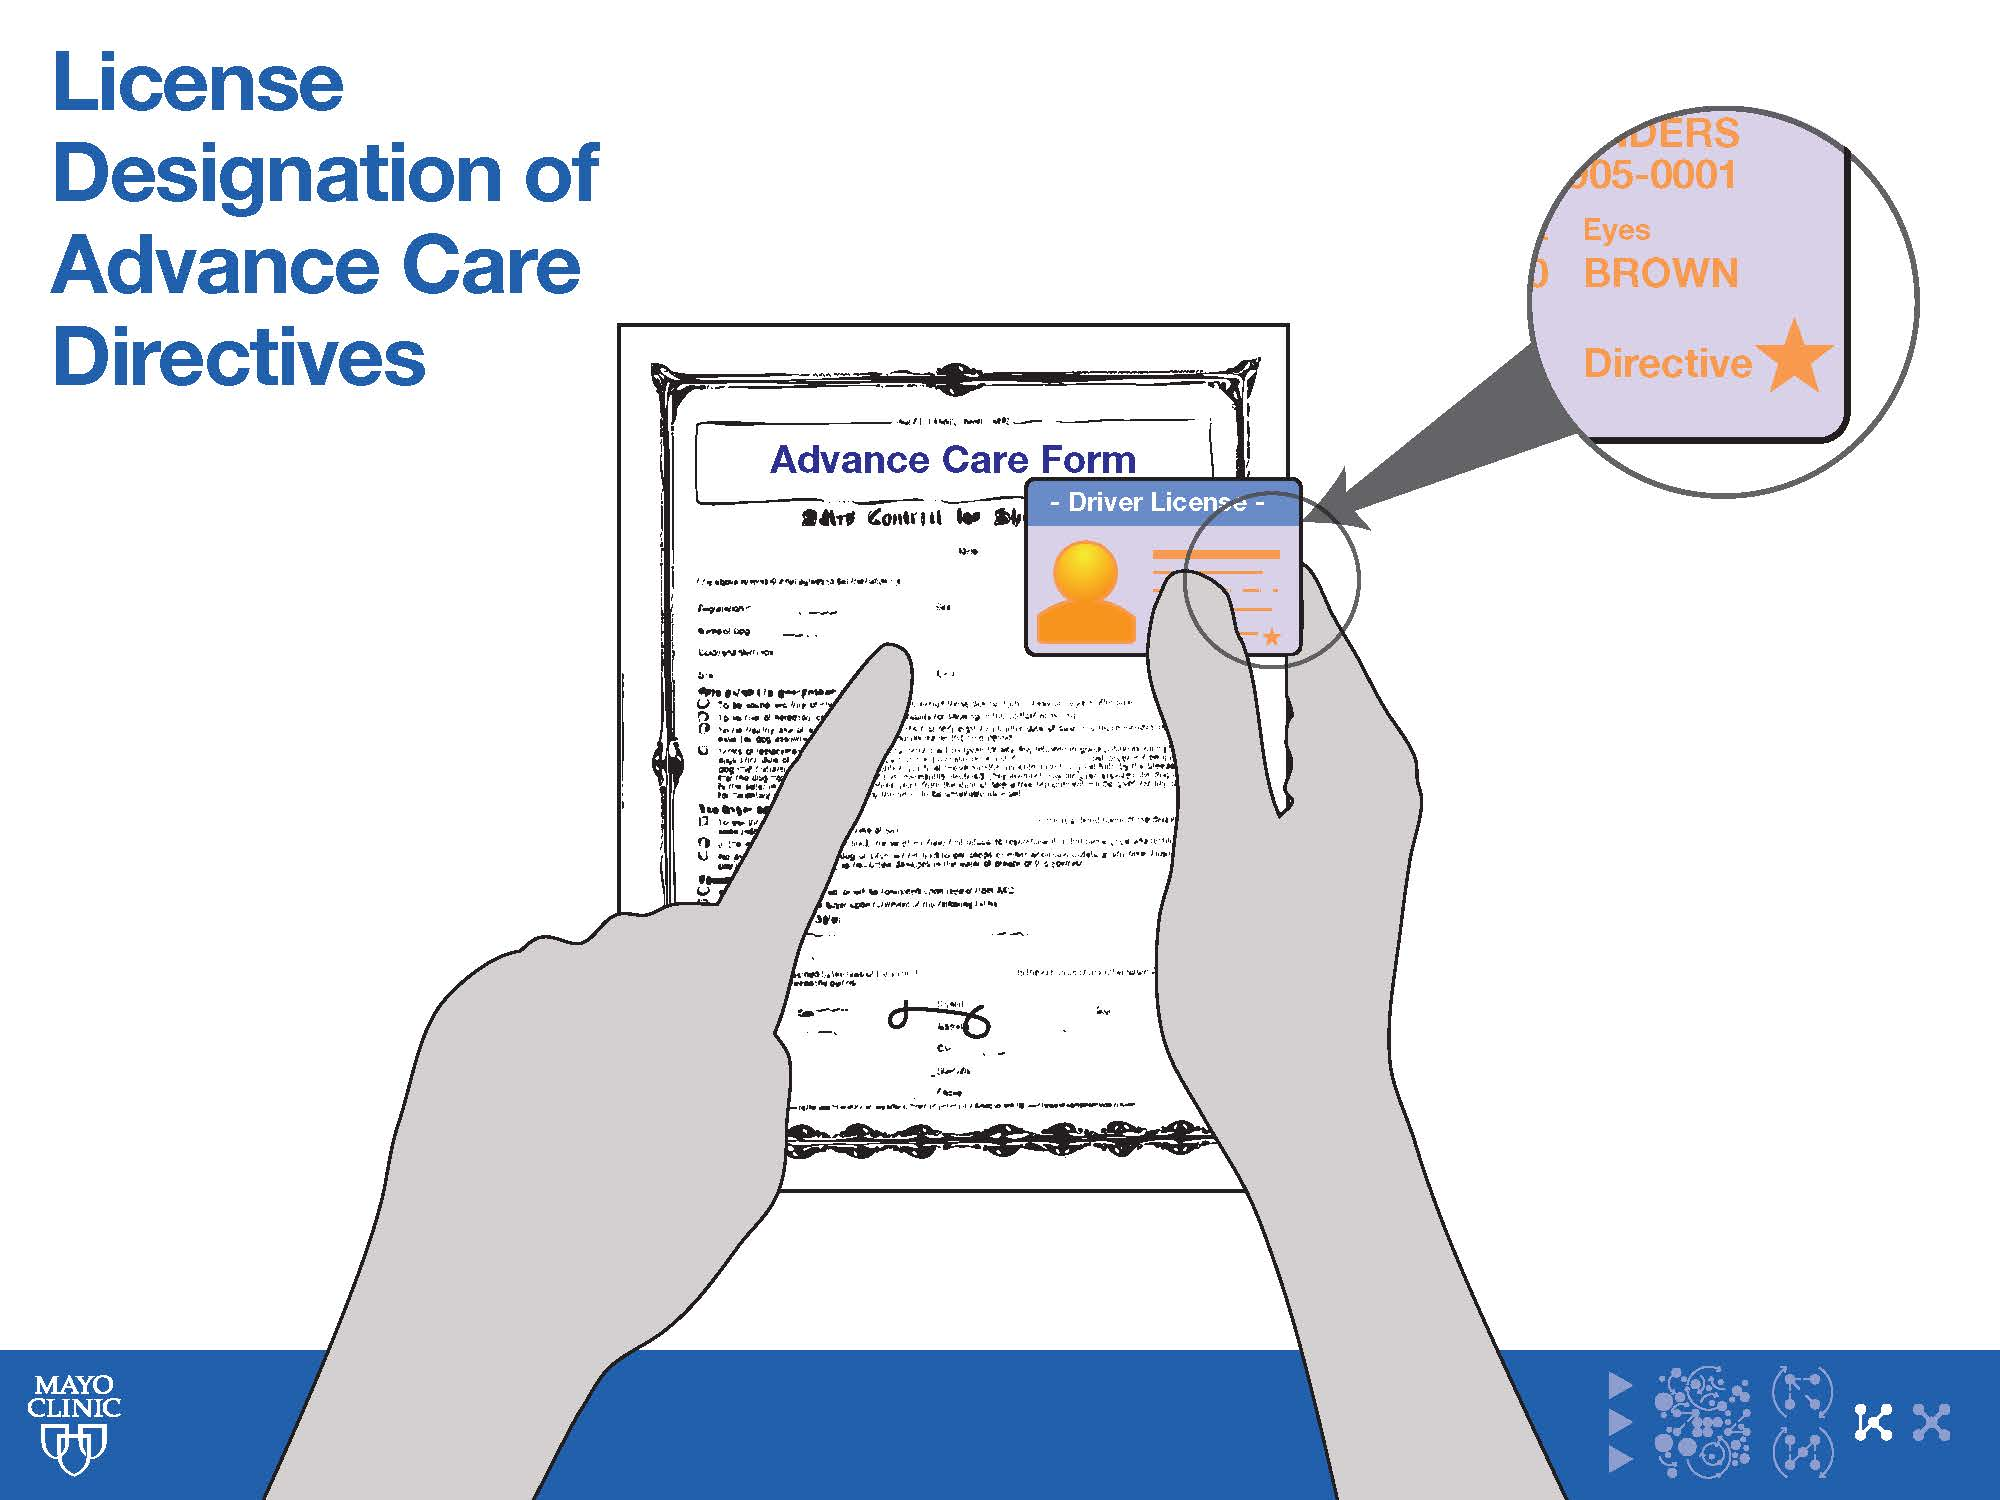 Sample Concept – Advanced Care Directives   This concept arose from the insight thatAdvance Care Directives are vital for patients to get the care they want. Advanced Care Directives (ACD) identify a patient surrogate to make critical decisions about the patient's care, as well as provide critical information about care according to patients' wishes. However, the majority of patients do not have an Advance Care Directive.We believed that integrating ACD in driver's  lic  ense  registration process would broaden awareness of the importance of ACDs since 80% of the American adult population has a driver's license